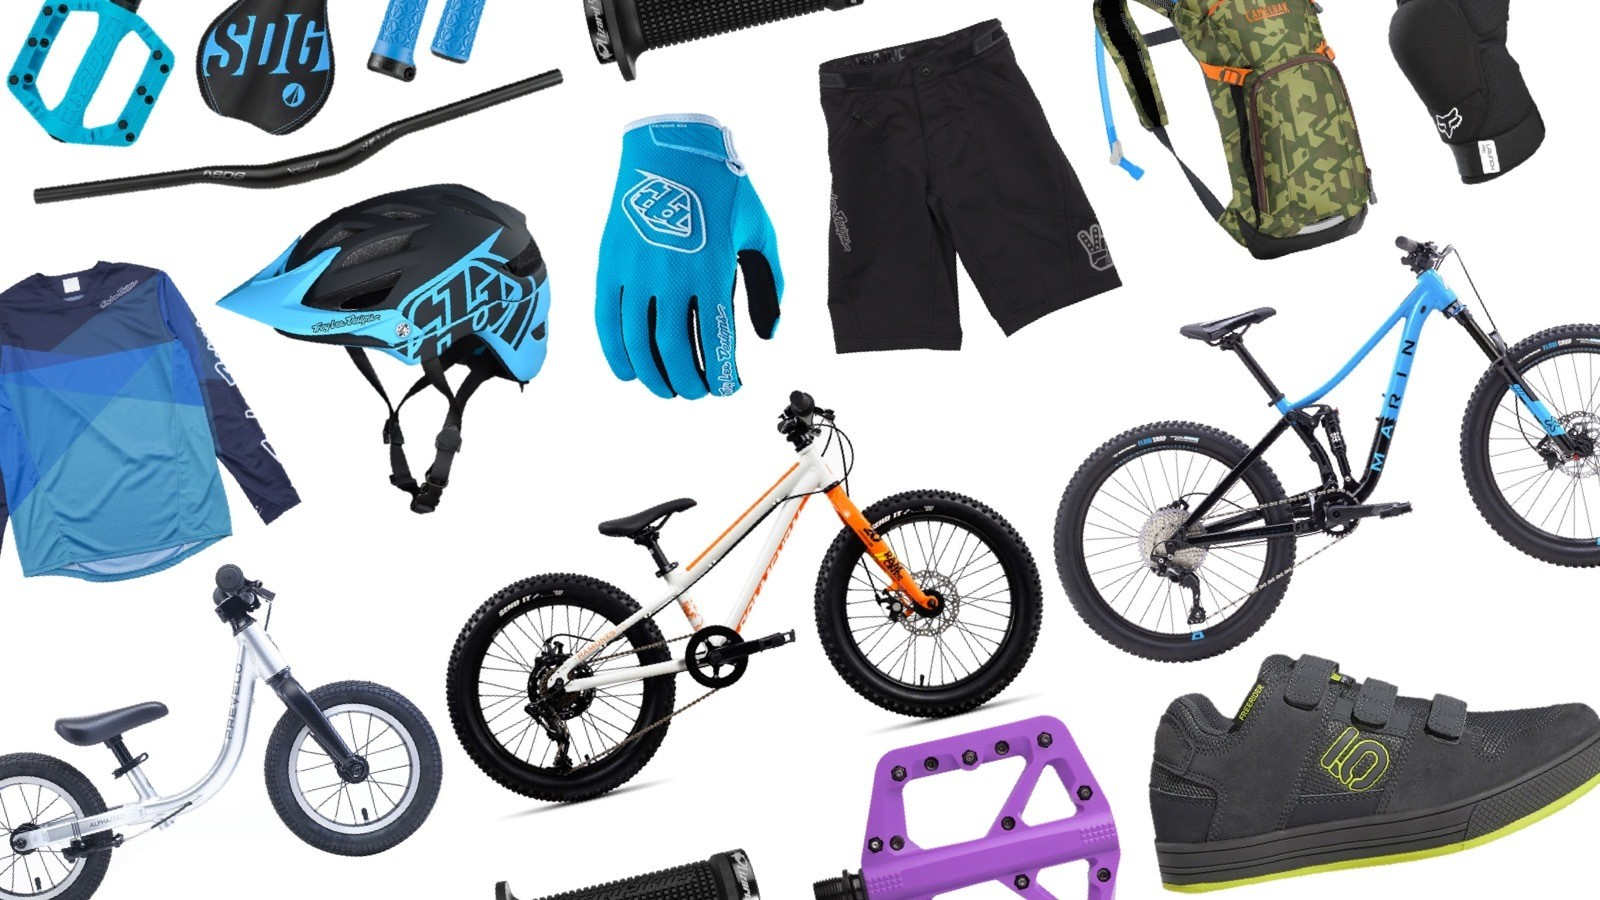 Holiday Gift Guide: Mountain Bikes and Gear for Kids